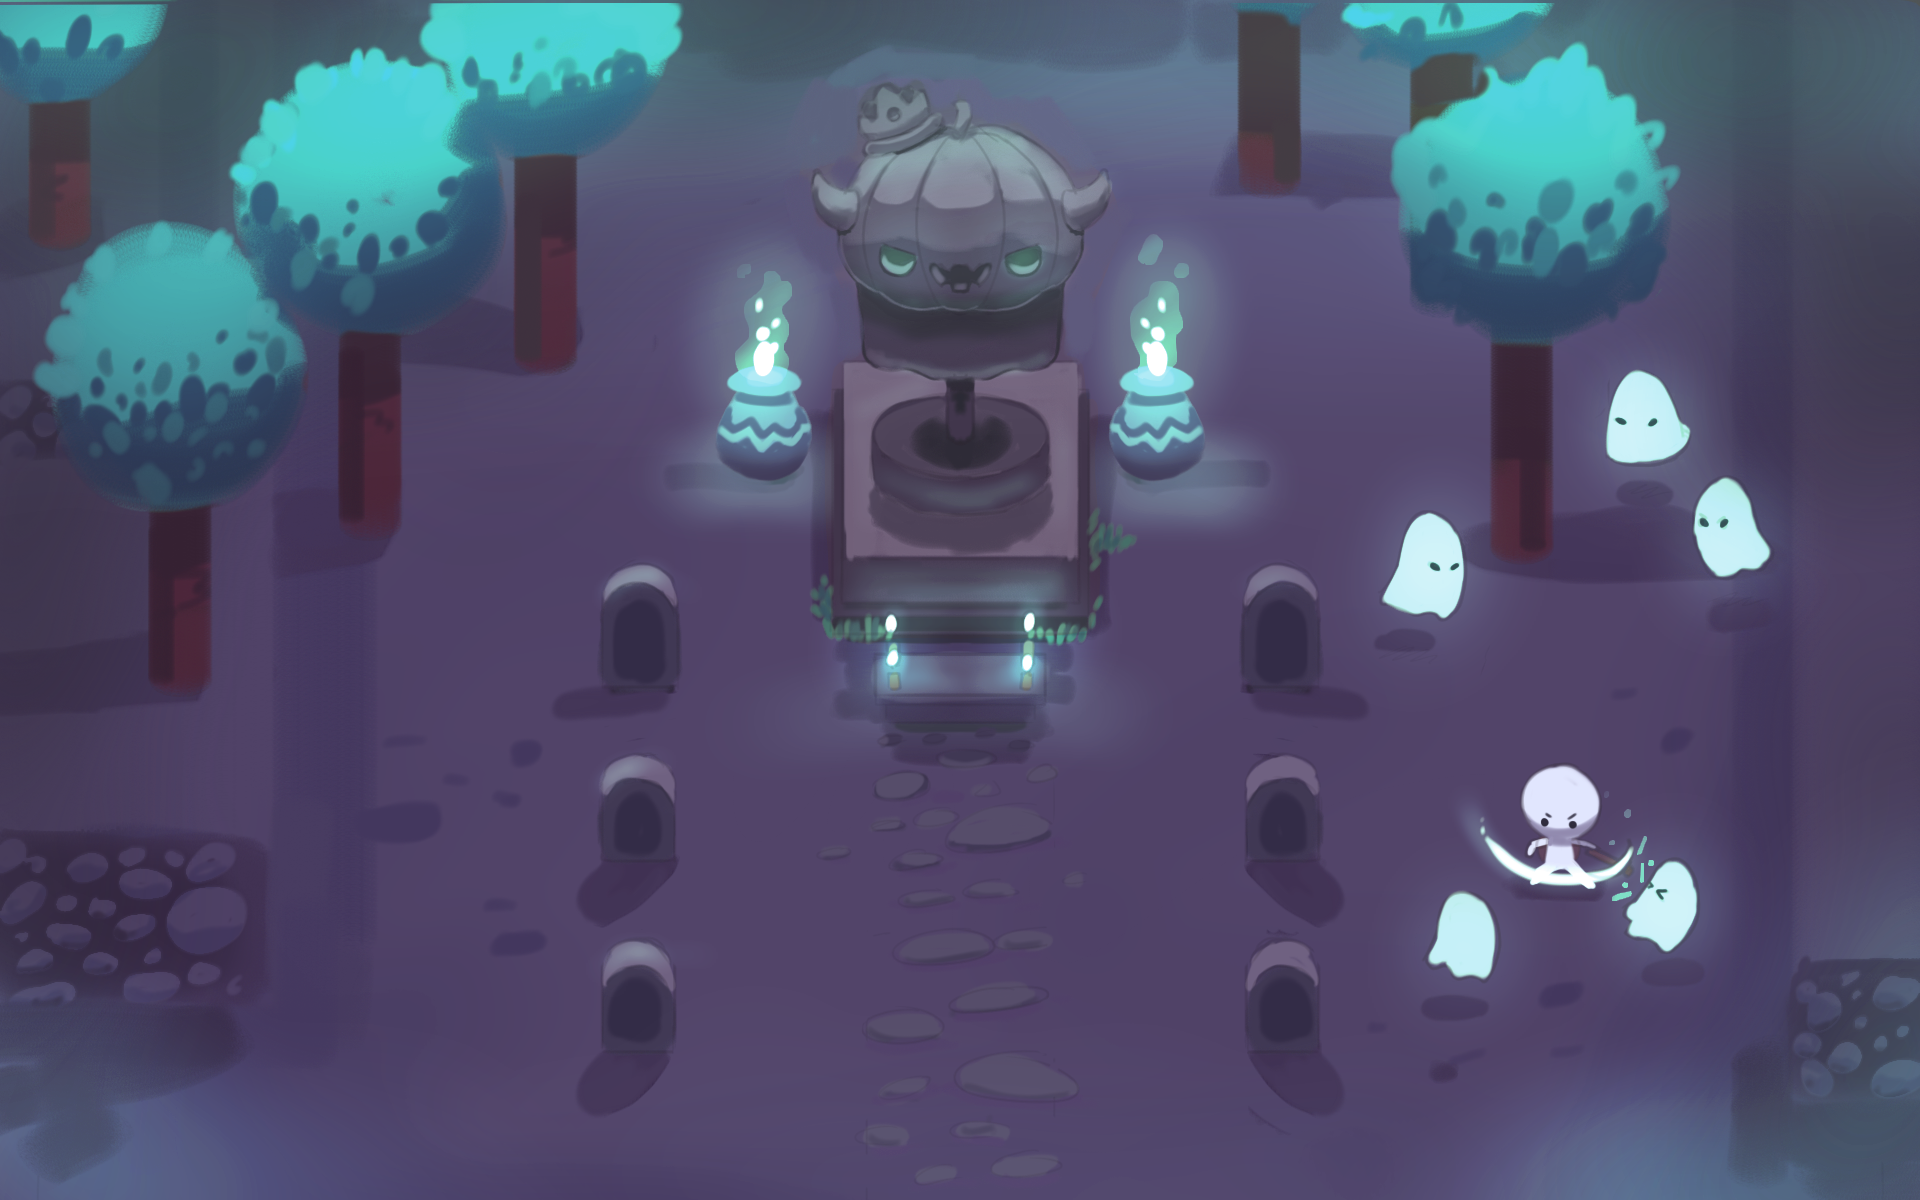 Spooky graveyard concept art by @Gaziter